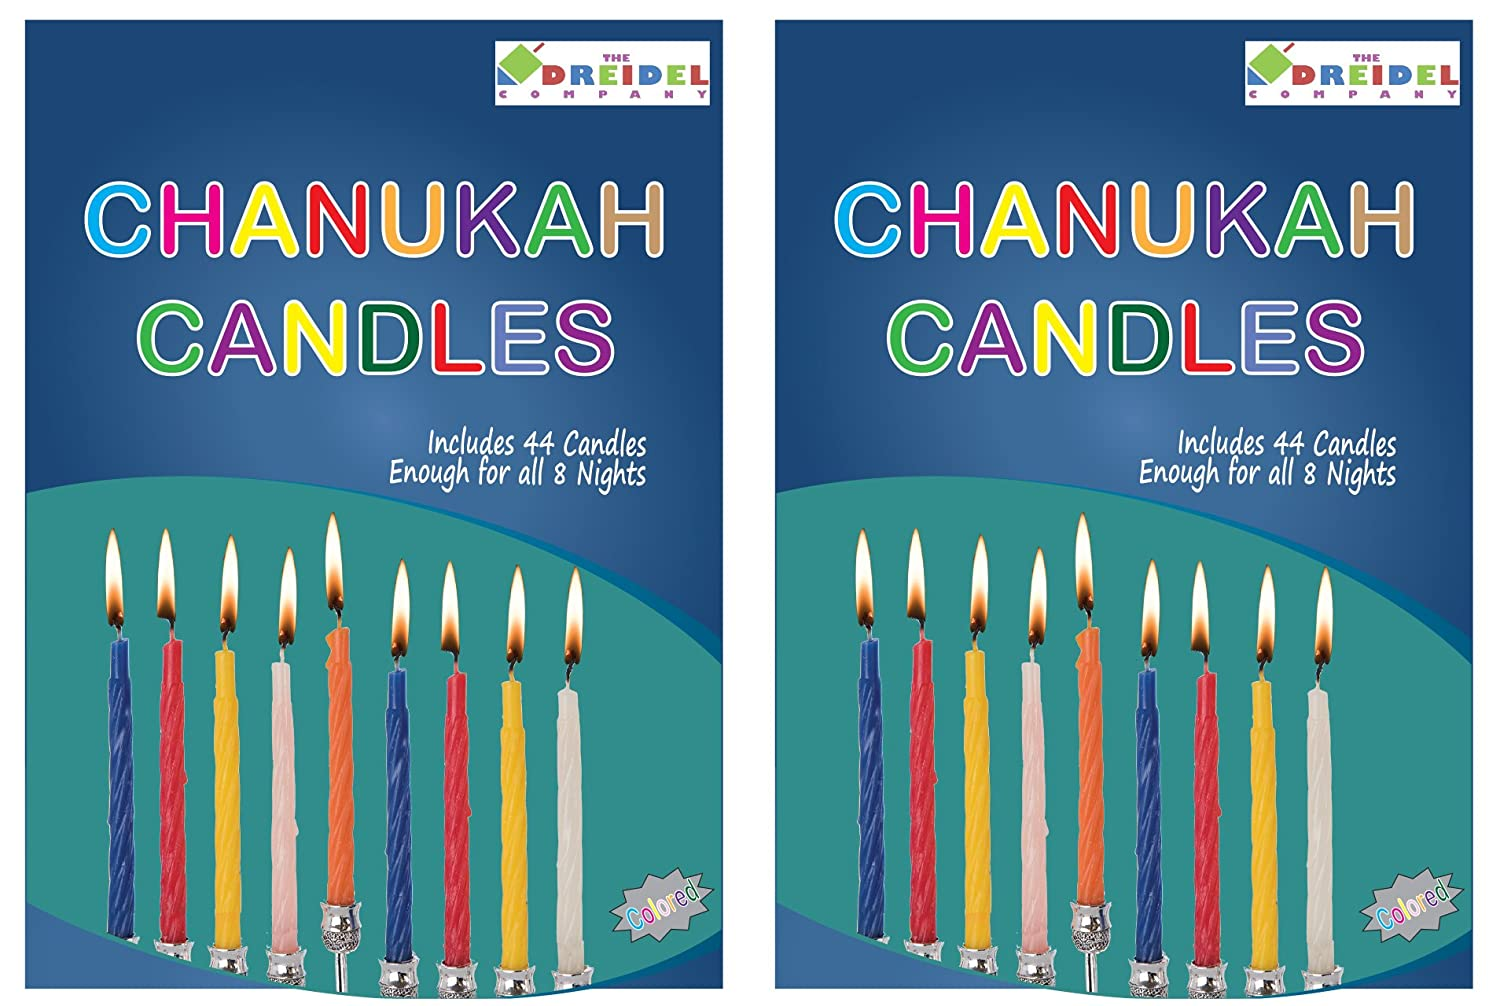 Menorah Candles Chanukah Candles 44 Colorful Hanukkah Candles For All 8 Nights of Chanukah (2-Pack) The Dreidel Company